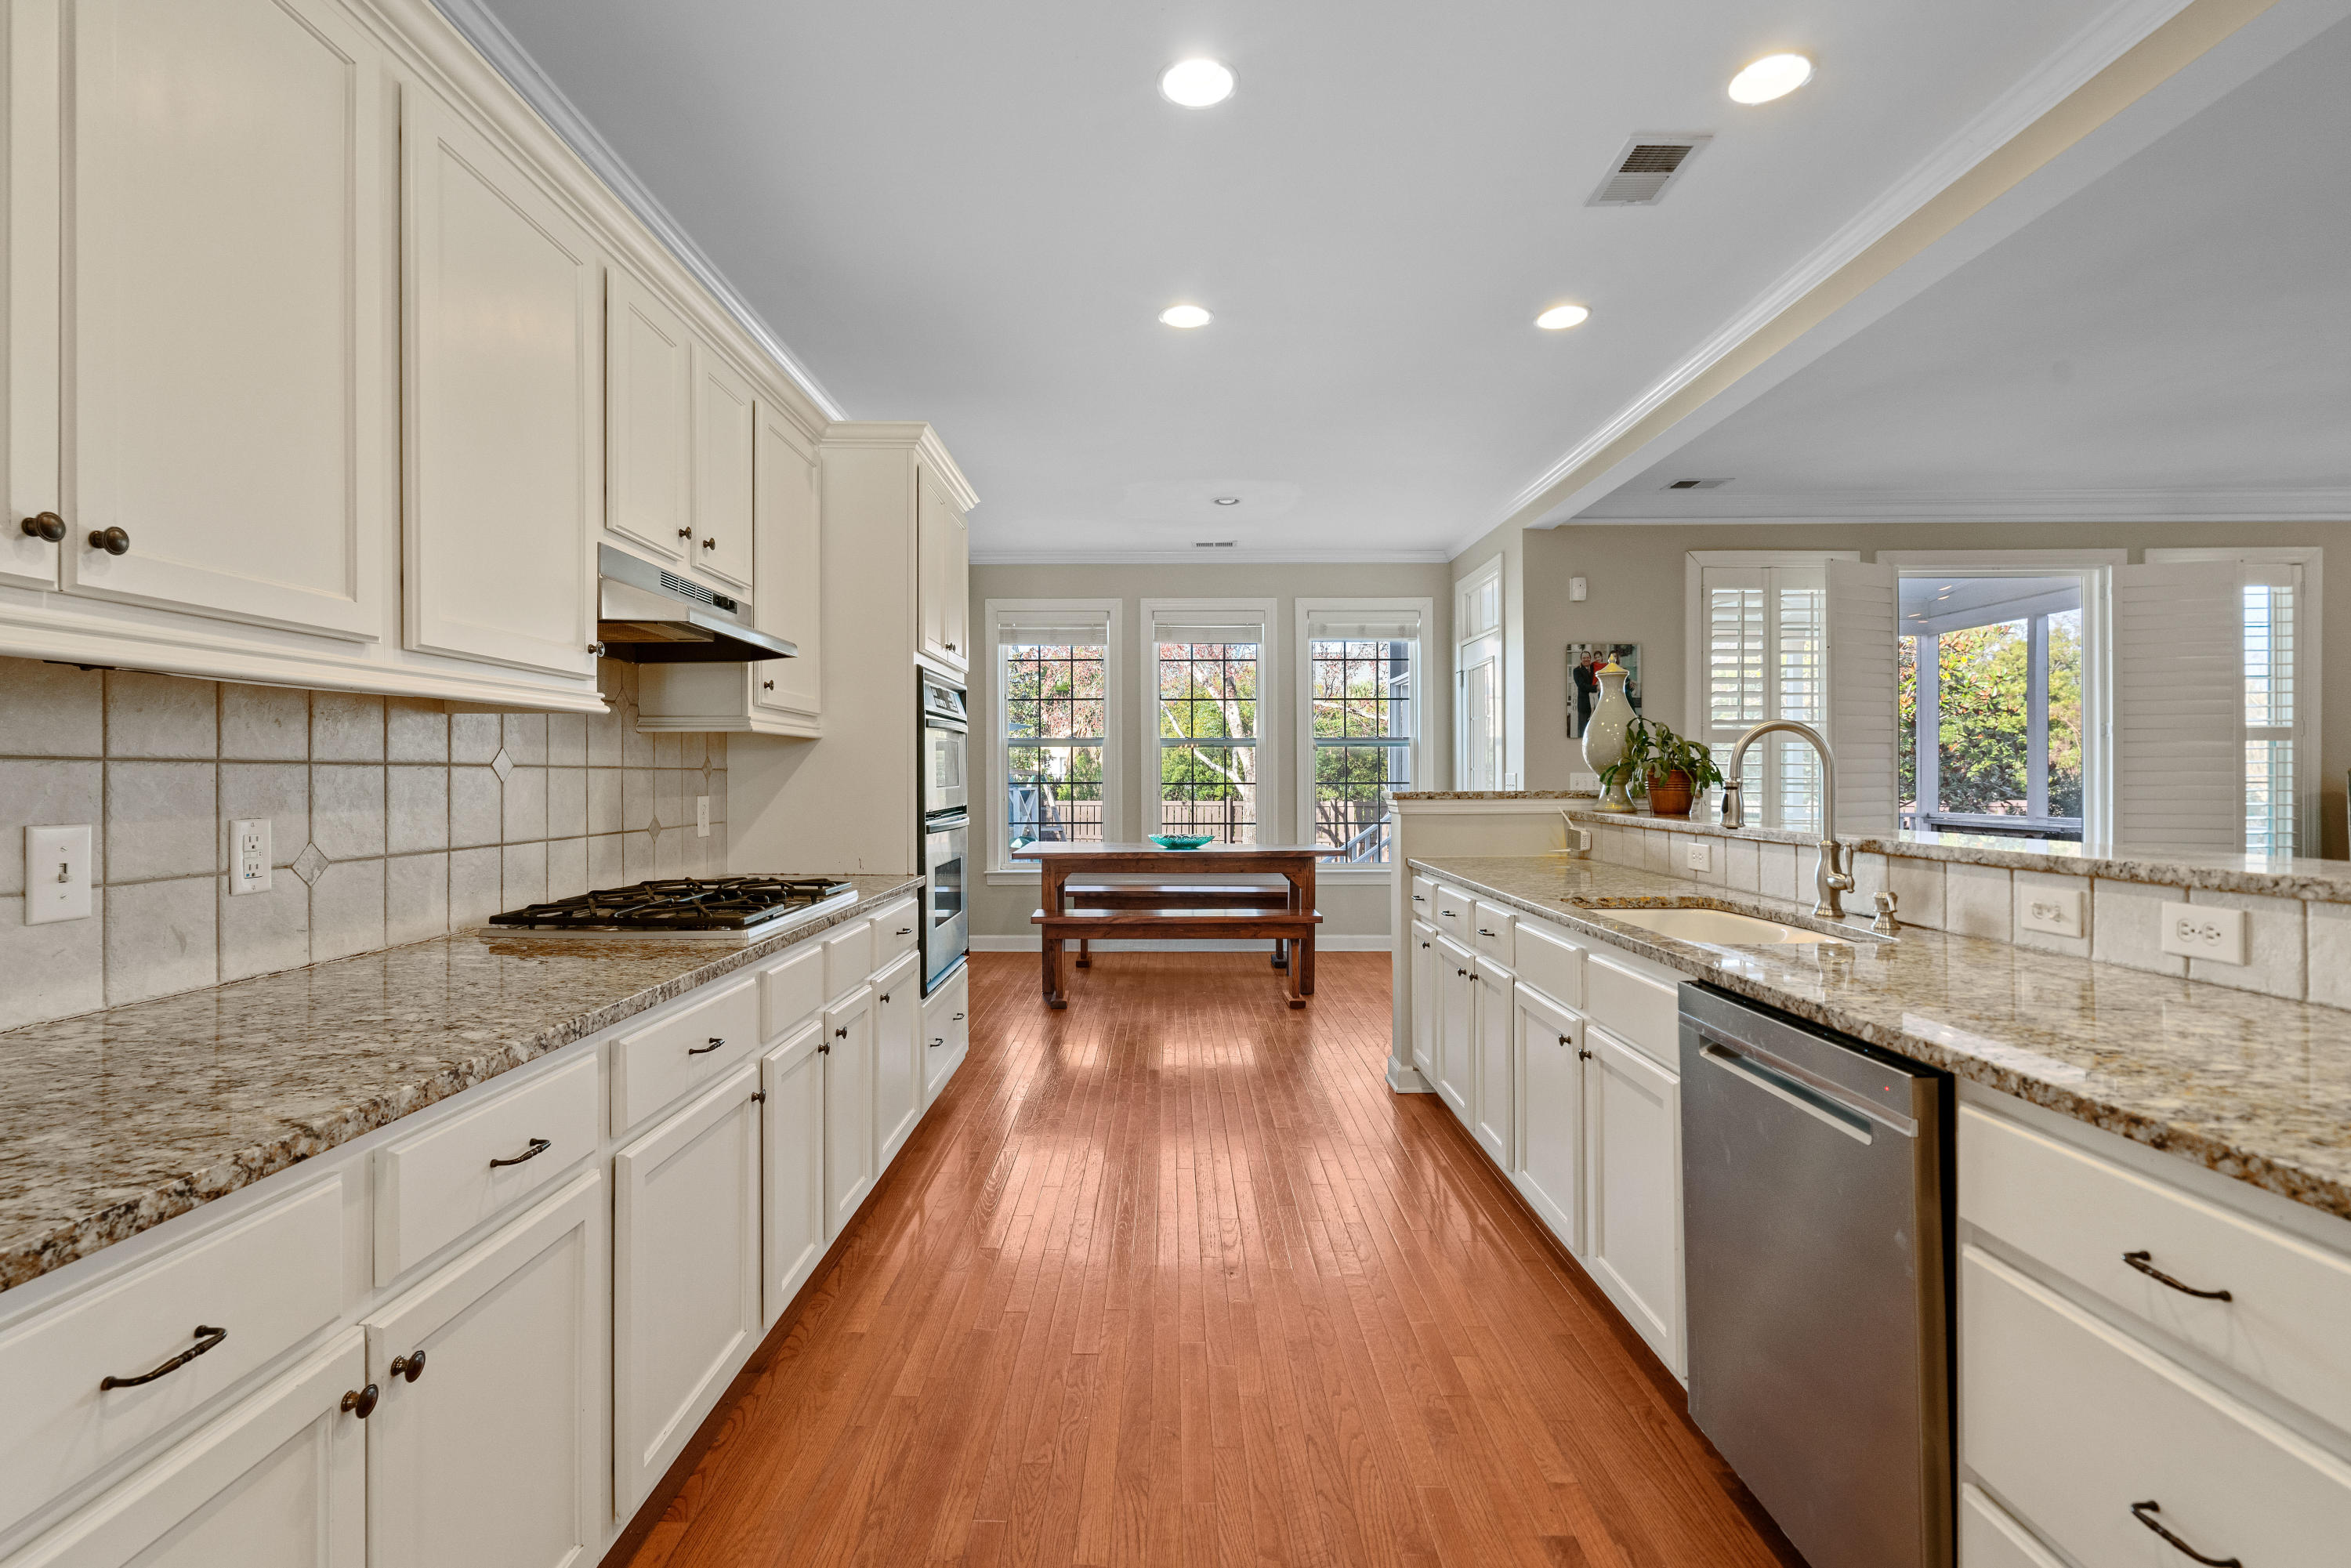 Dunes West Homes For Sale - 1600 Willowick, Mount Pleasant, SC - 29